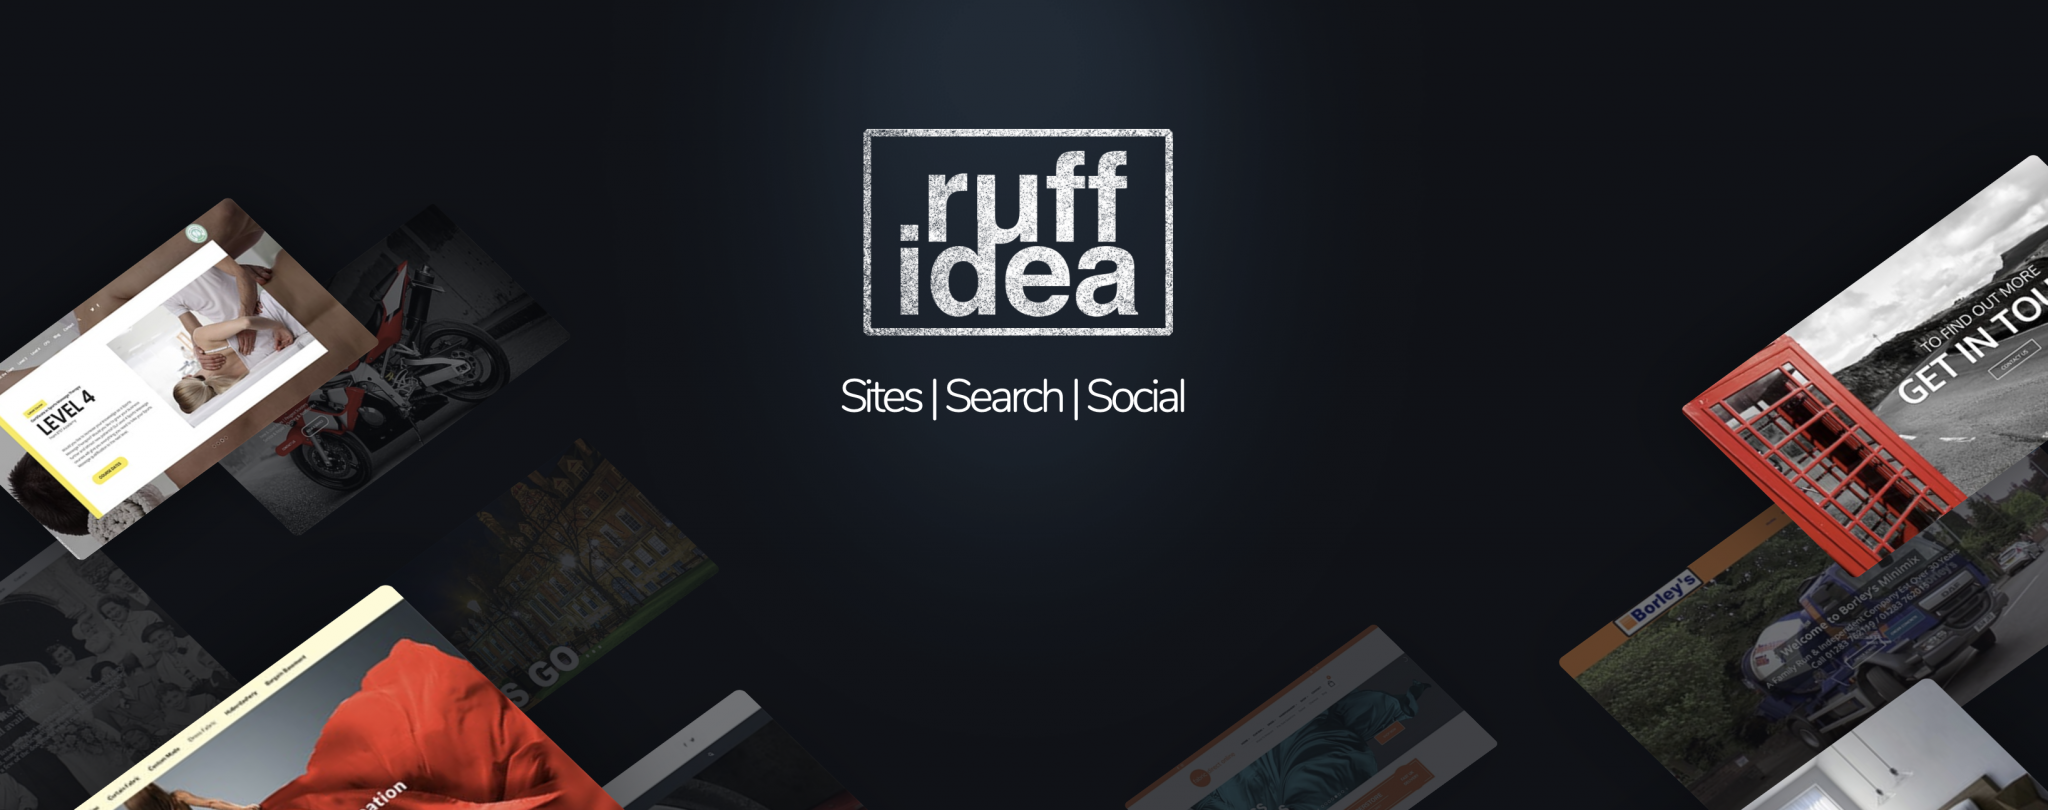 Ruff Idea Digital Marketing Agency